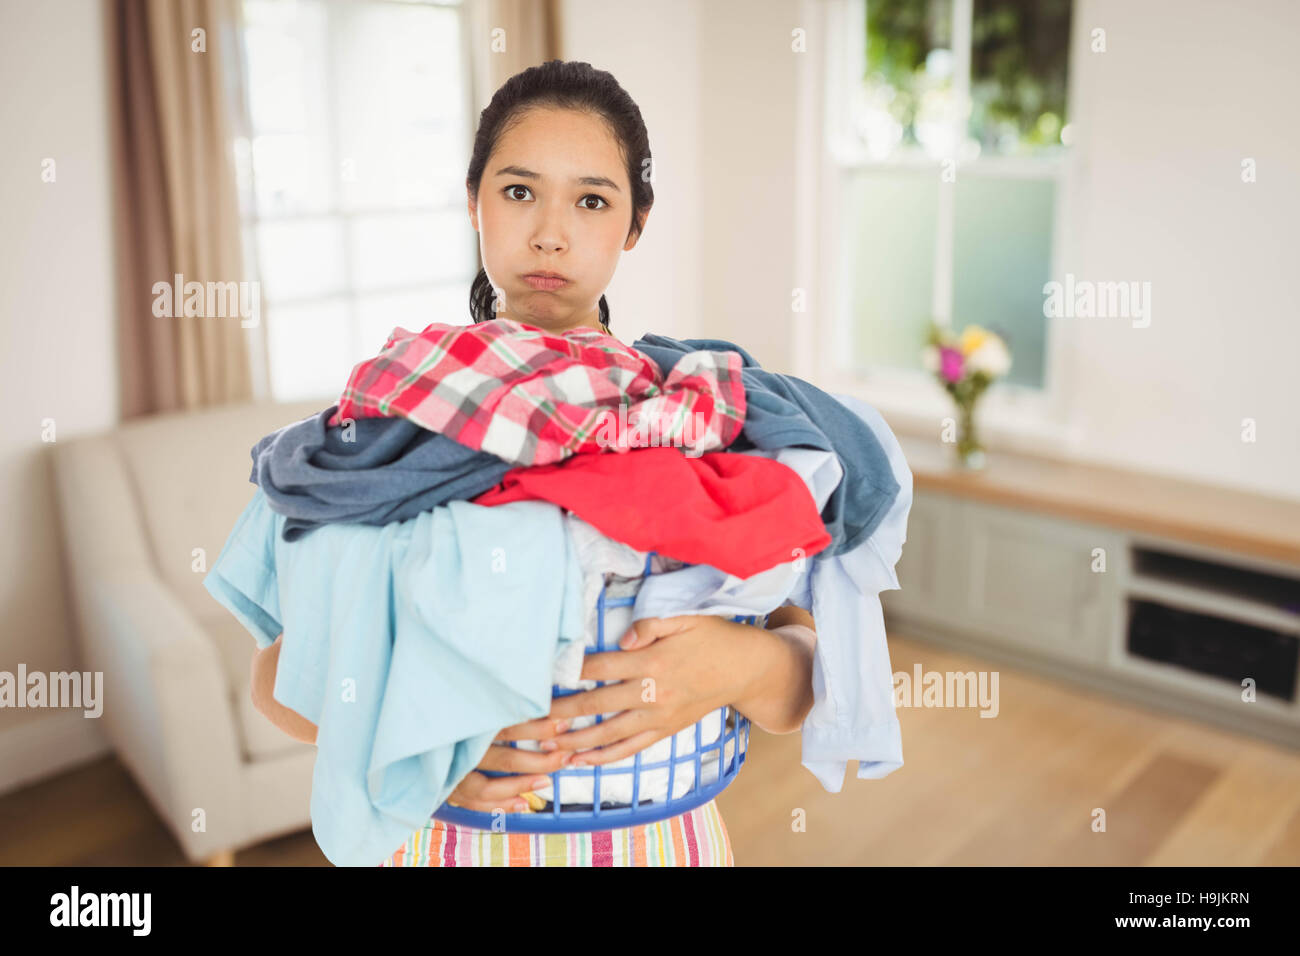 Composite image of tired woman holding full laundry basket - Stock Image